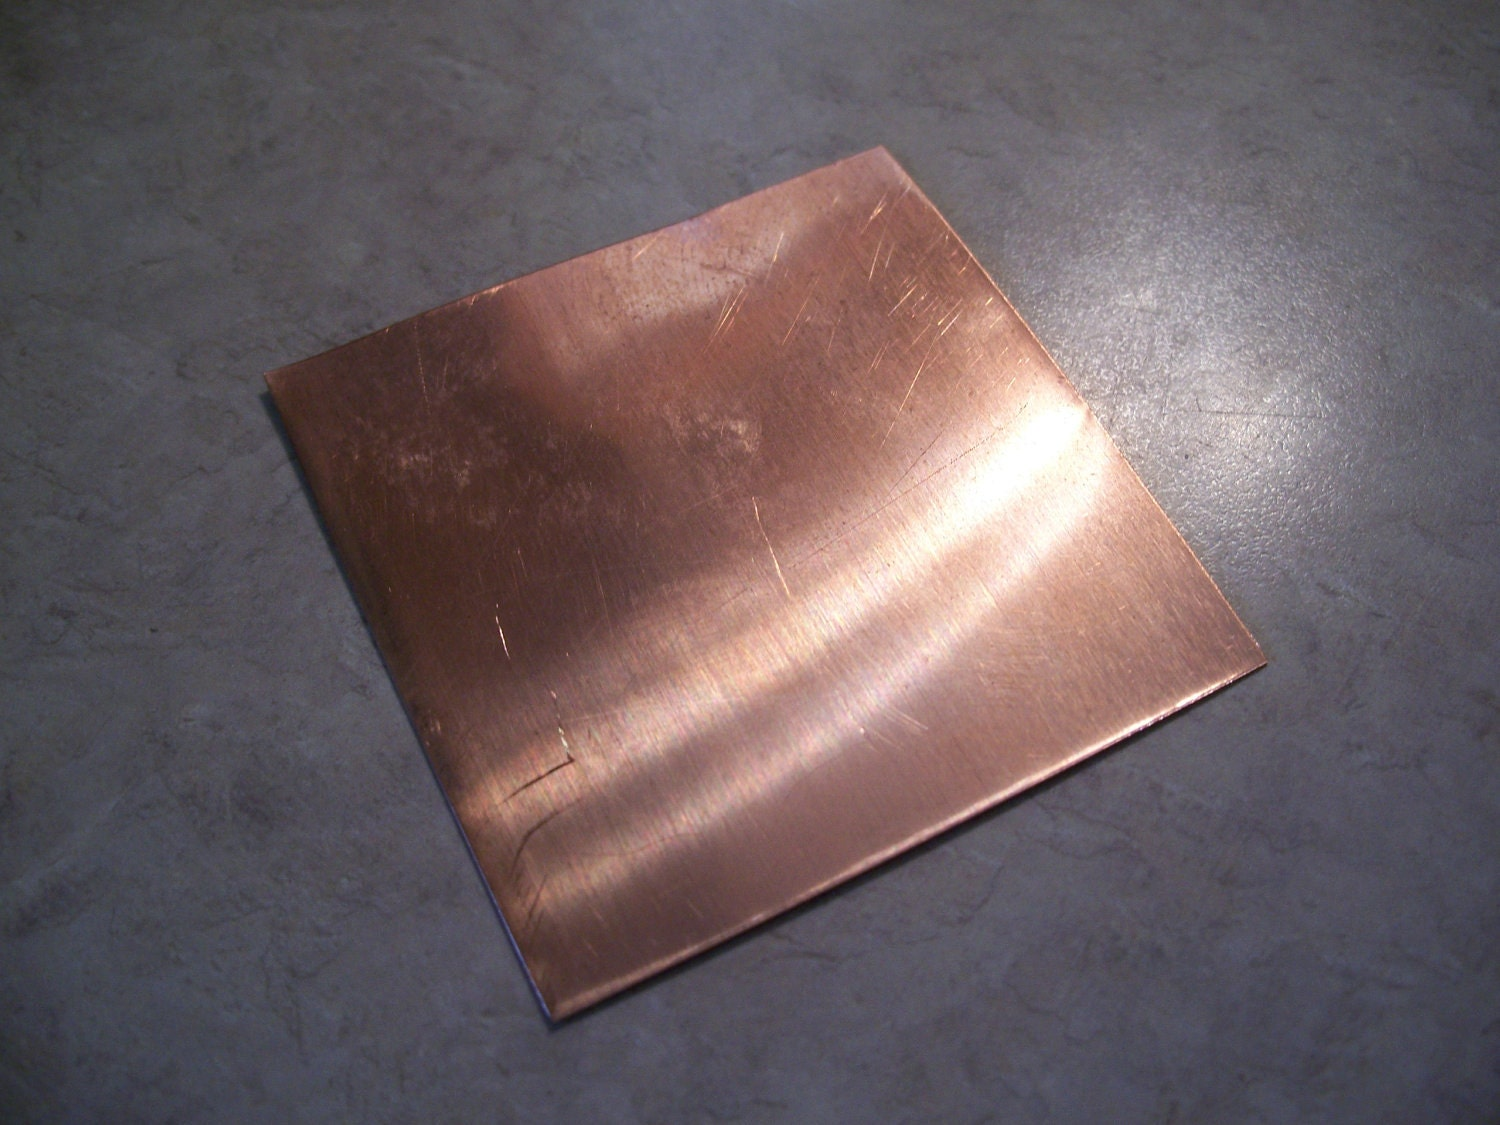 Pure Copper Sheet 12 X 12 X 24 Gauge For Craft